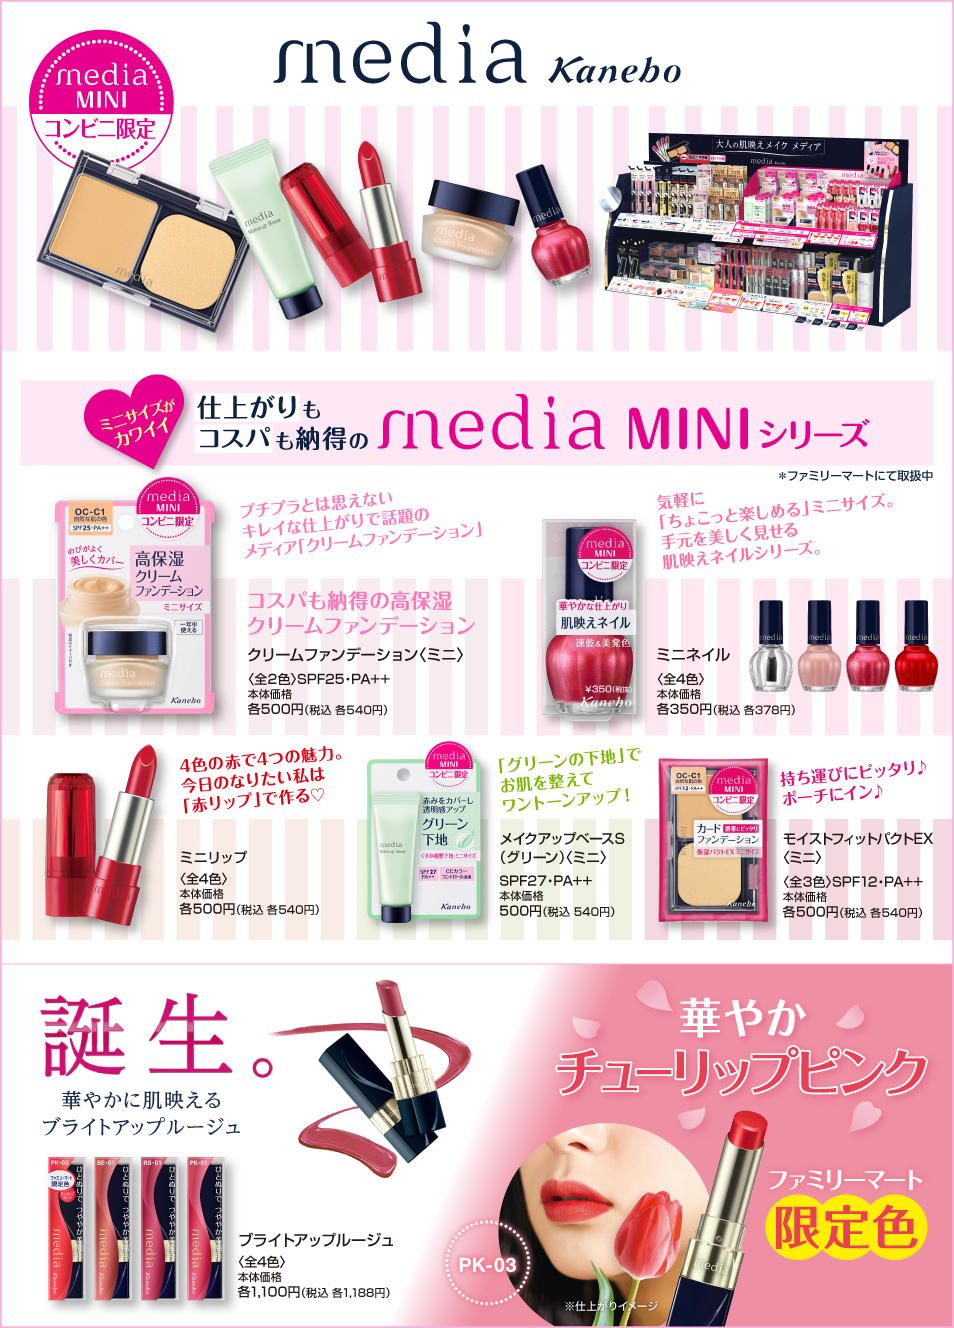 http://www.family.co.jp/content/dam/family/goods_images/cosmetics/media19SS_FMHP_0207.jpg